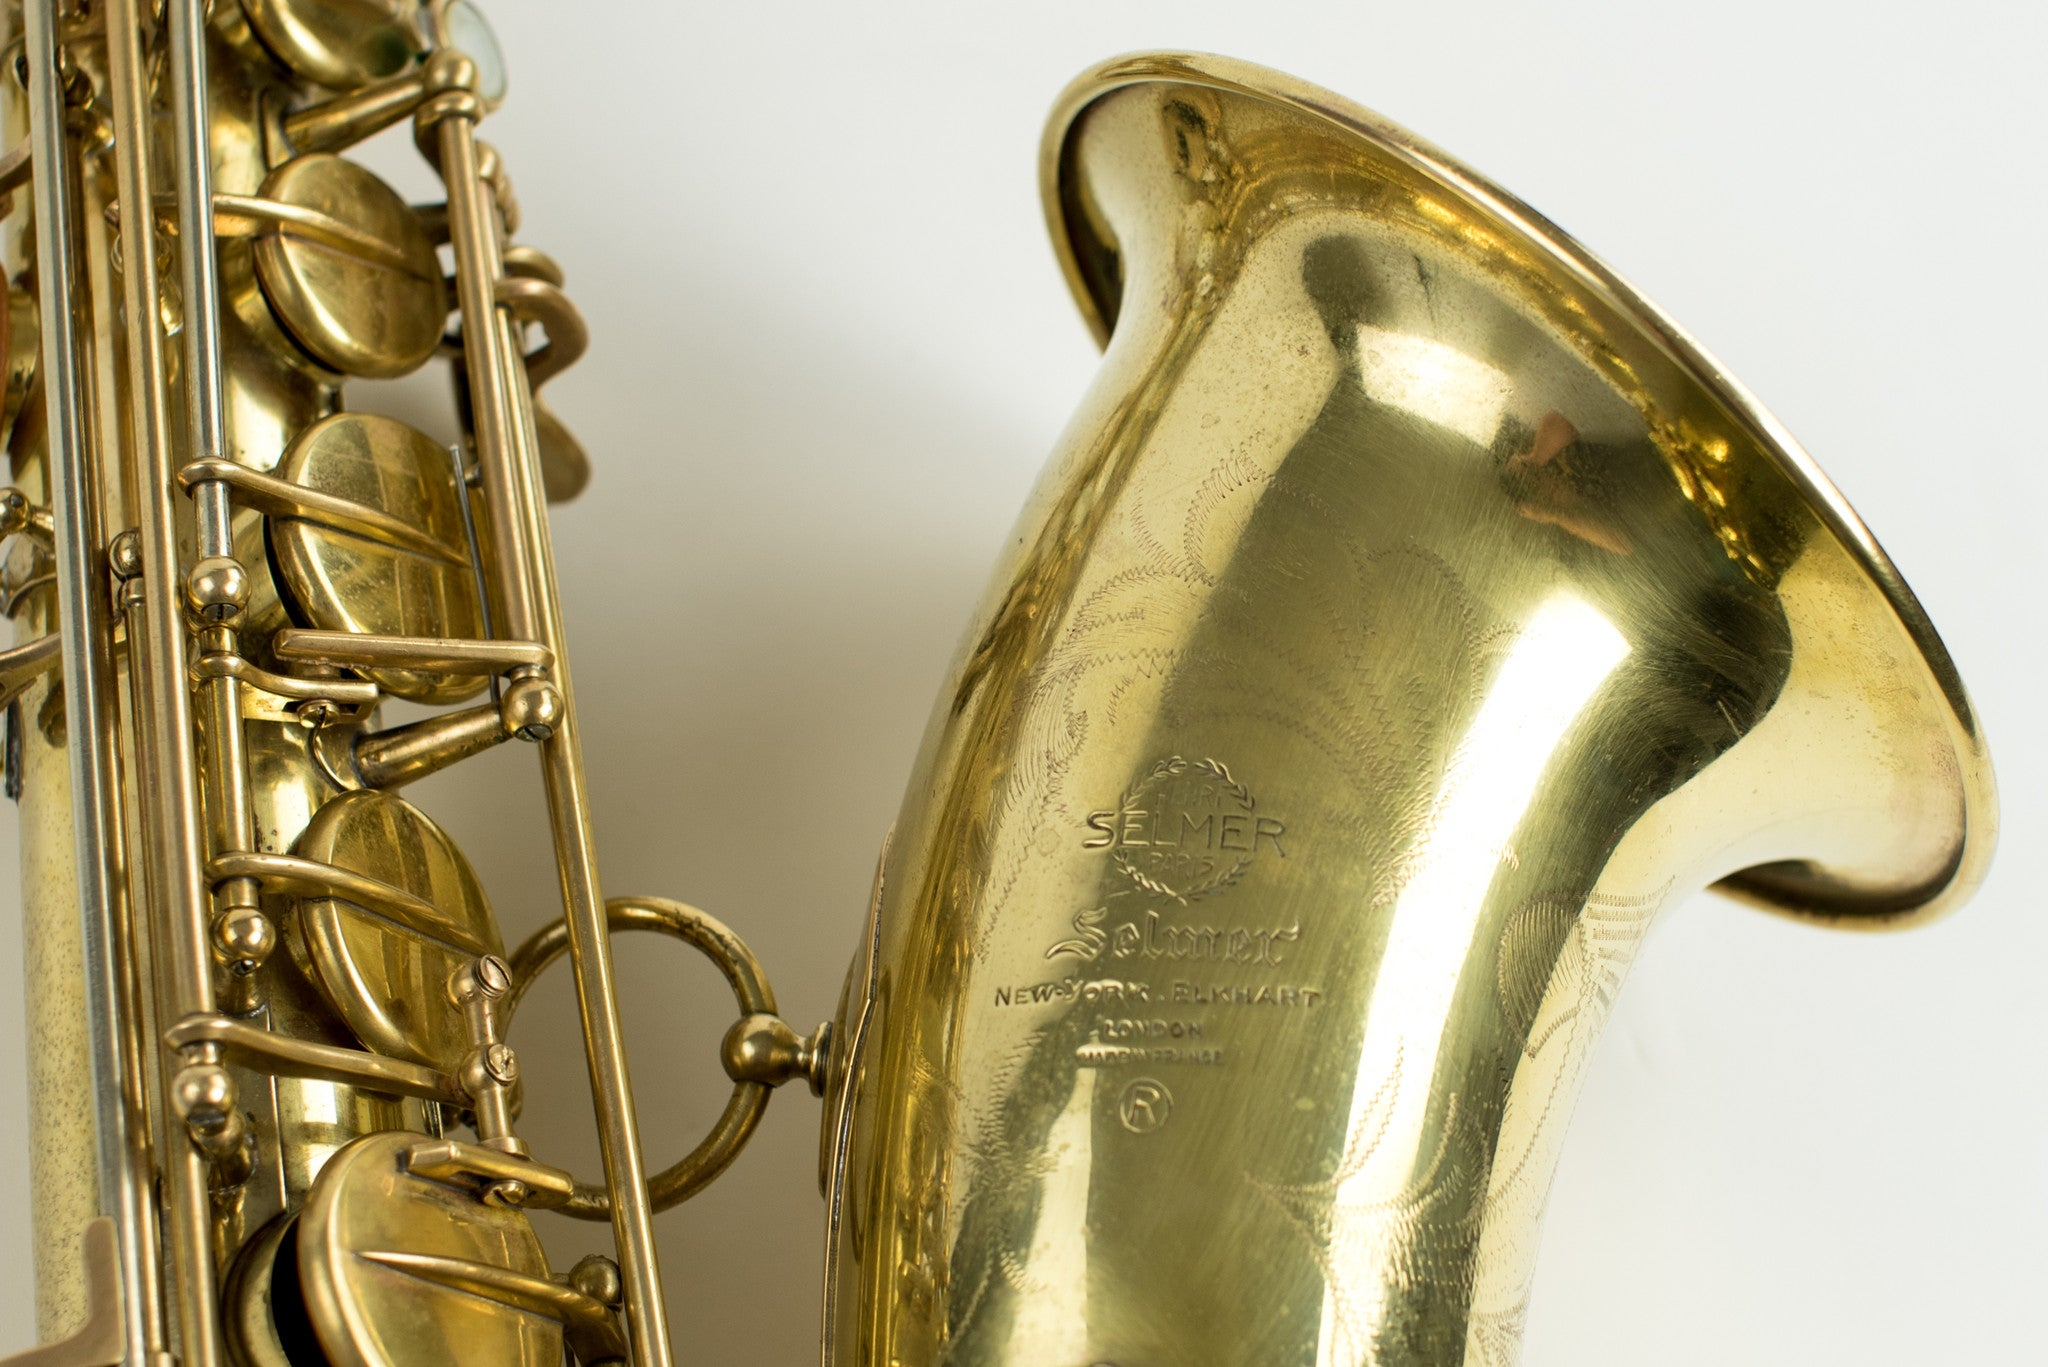 1962 Selmer Mark VI Tenor Saxophone 103,xxx, Fresh Overhaul